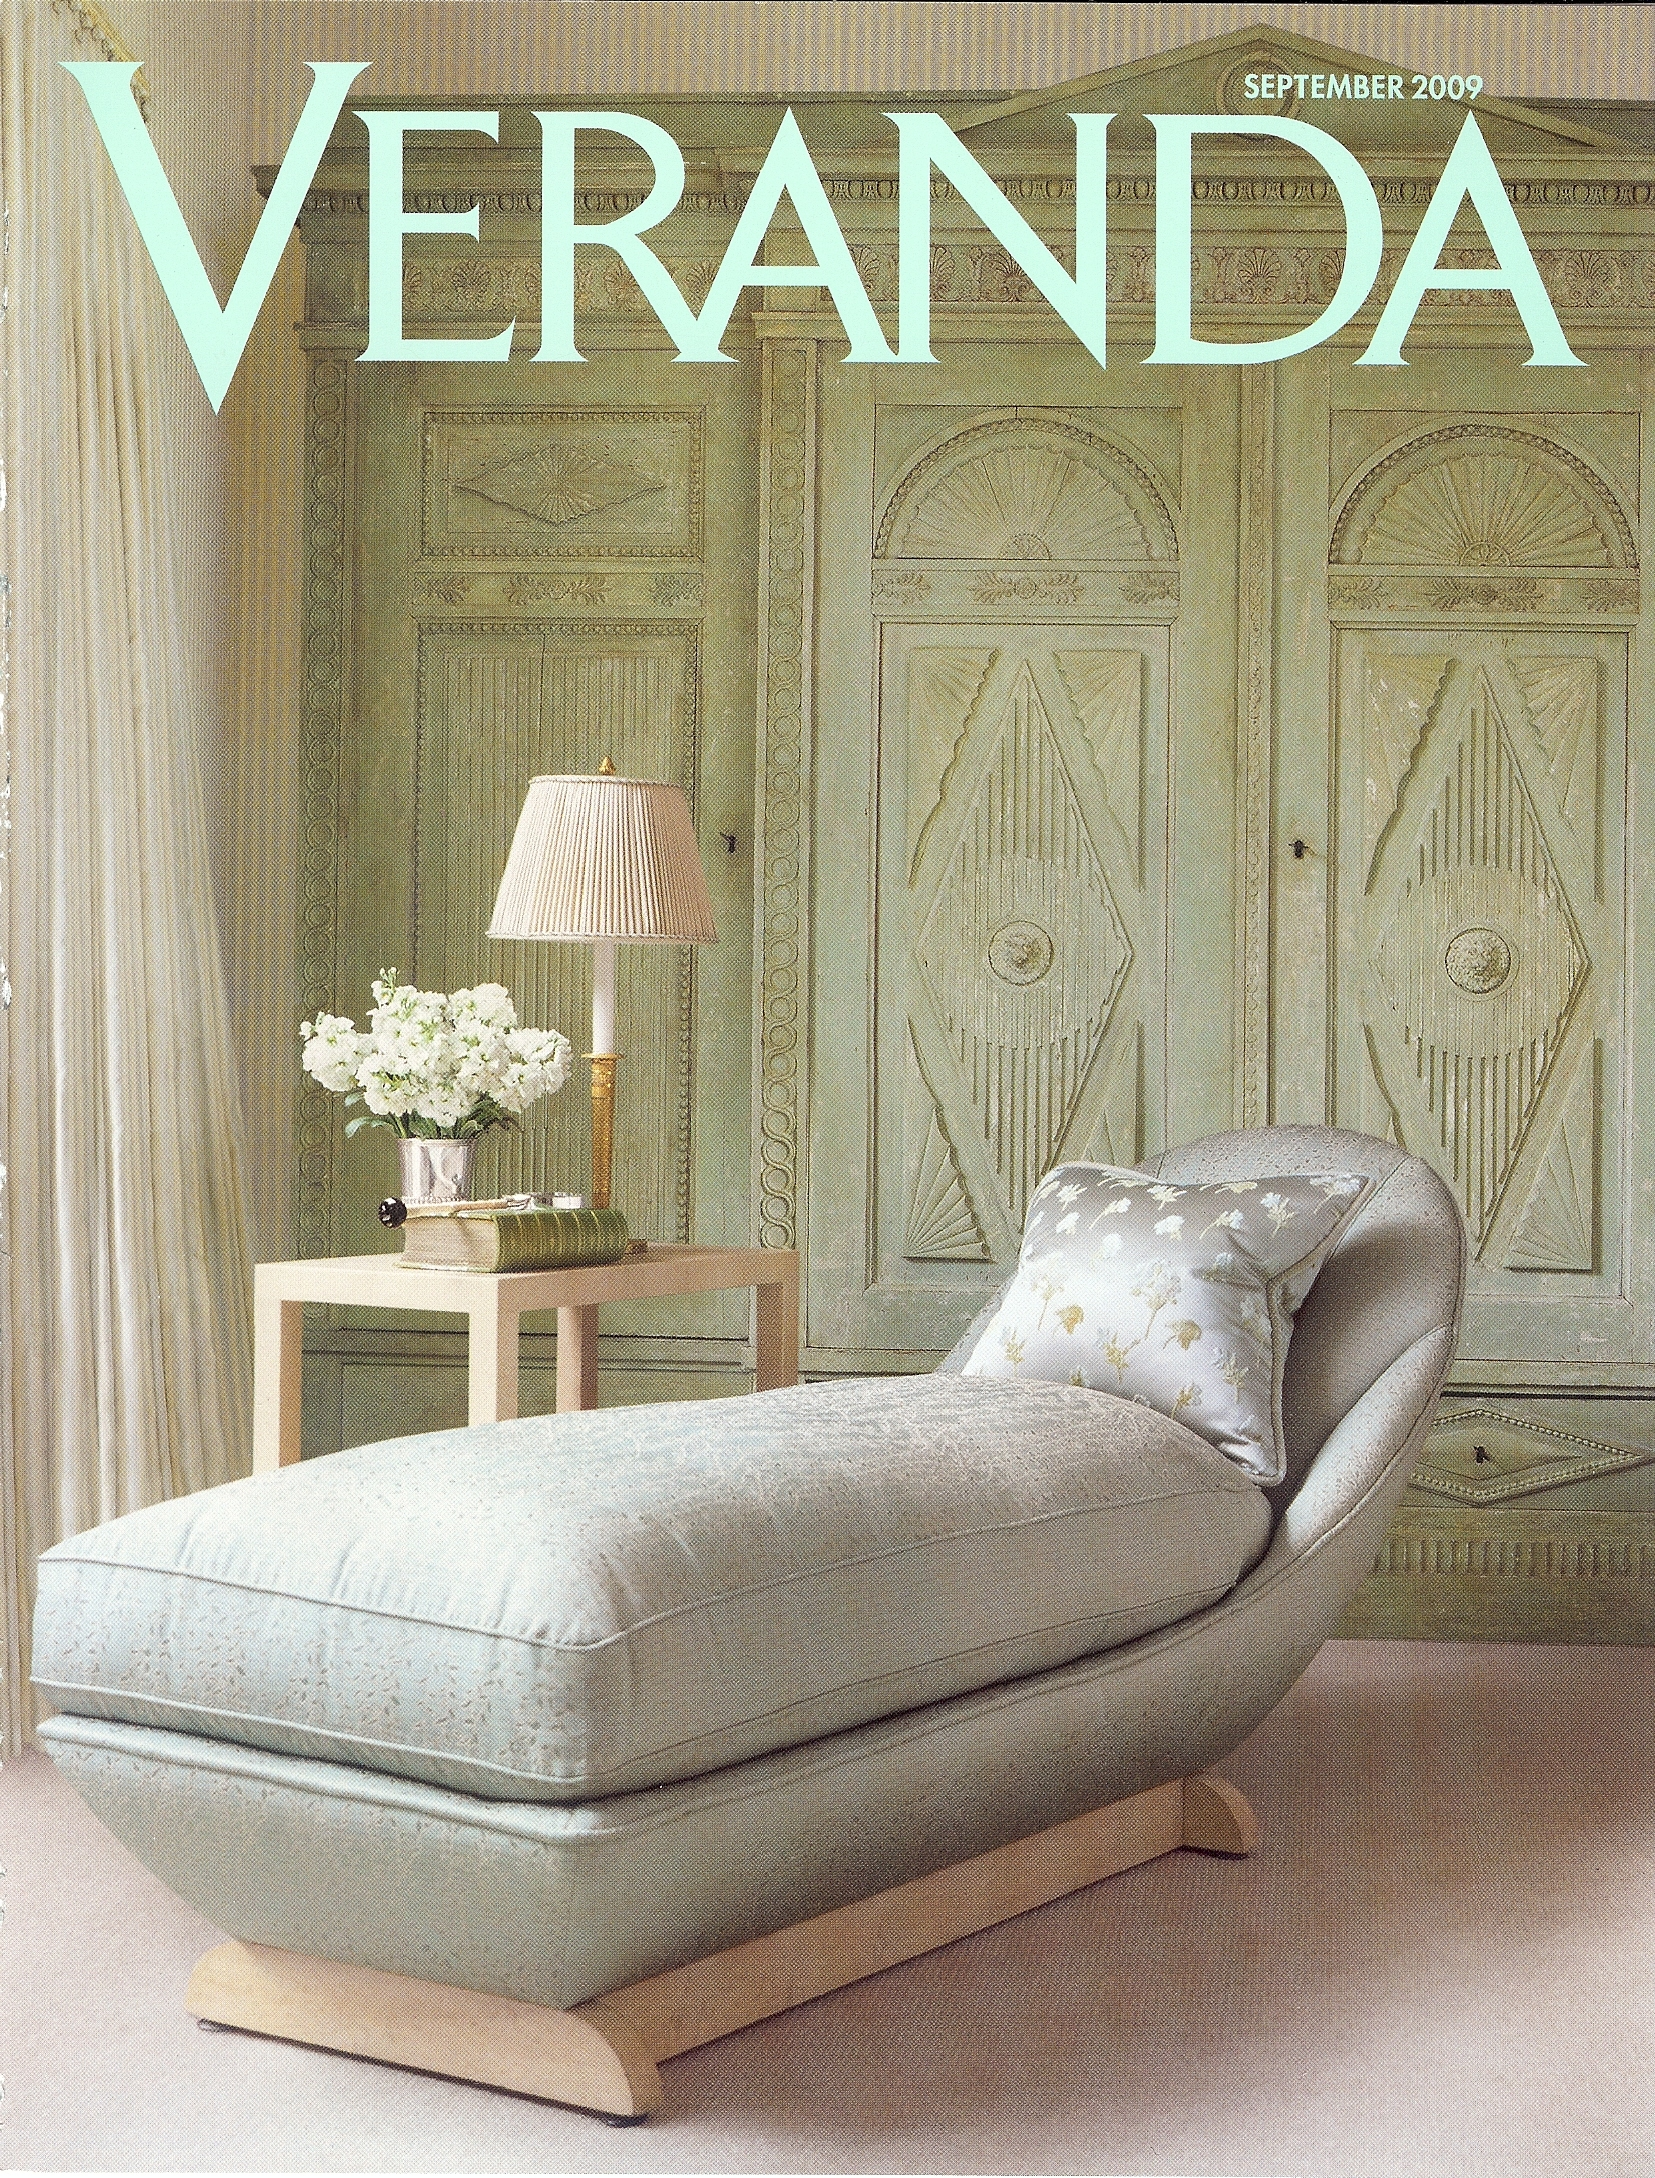 Veranda September 2009